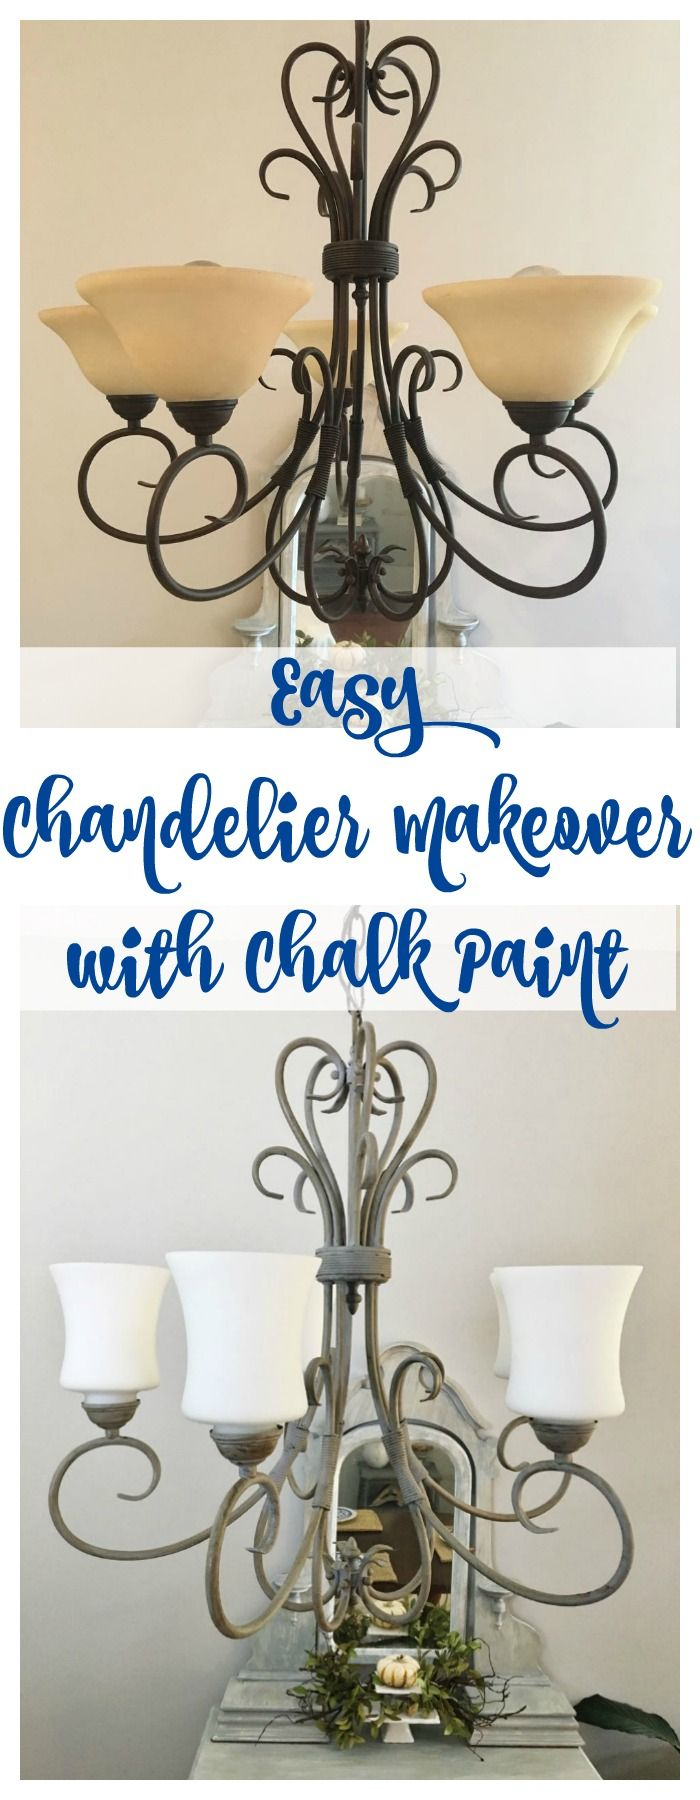 Chandelier makeover with chalk paint chandelier makeover chalk chandelier makeover with chalk paint arubaitofo Images